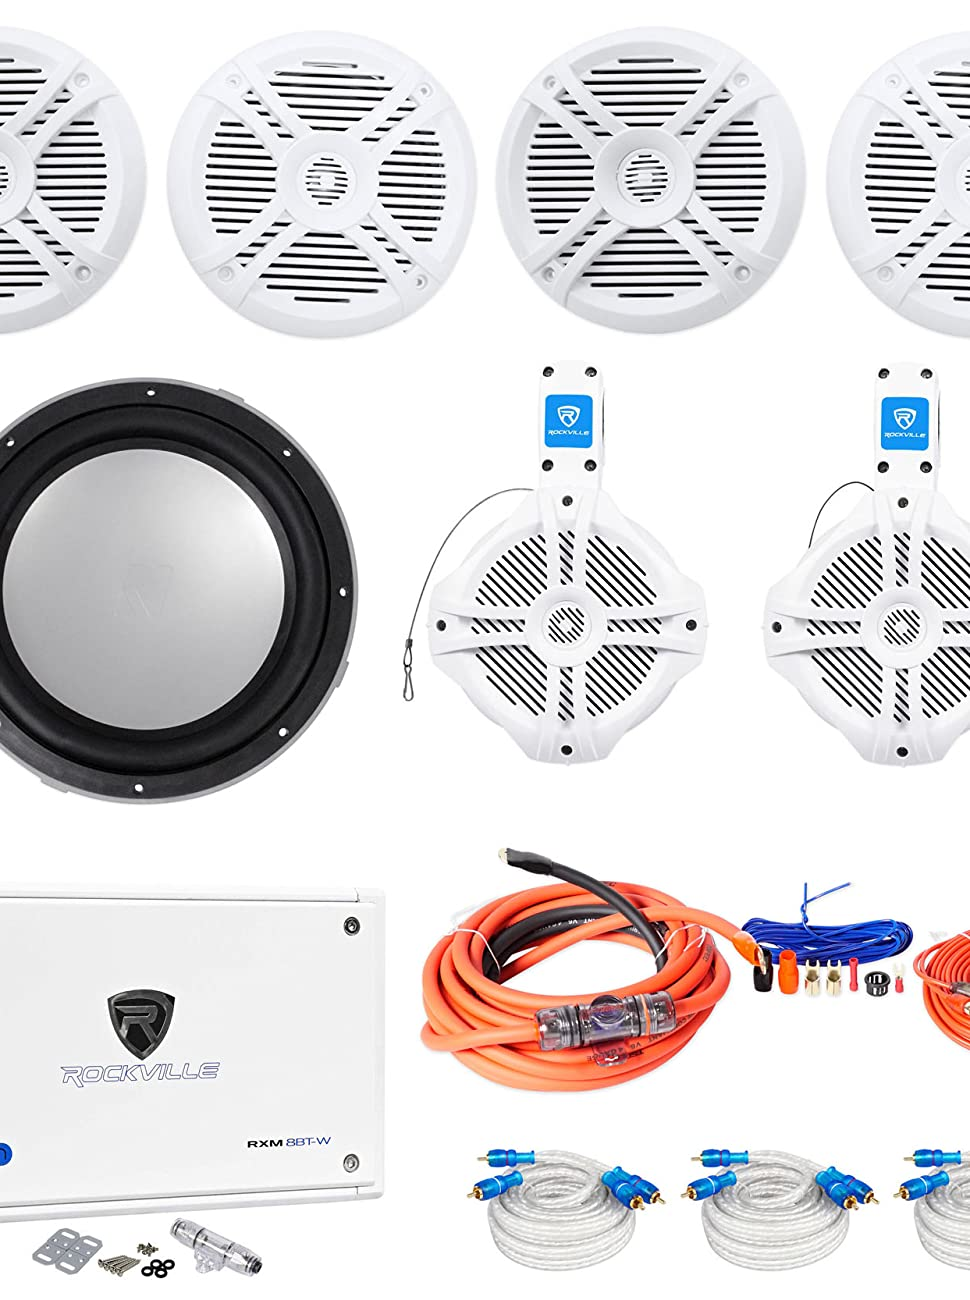 4 Rockville Rmsts65w 65 Marine Speakers Wakeboards Wiring Kit For Subs And Amp Kicker Sub Wire